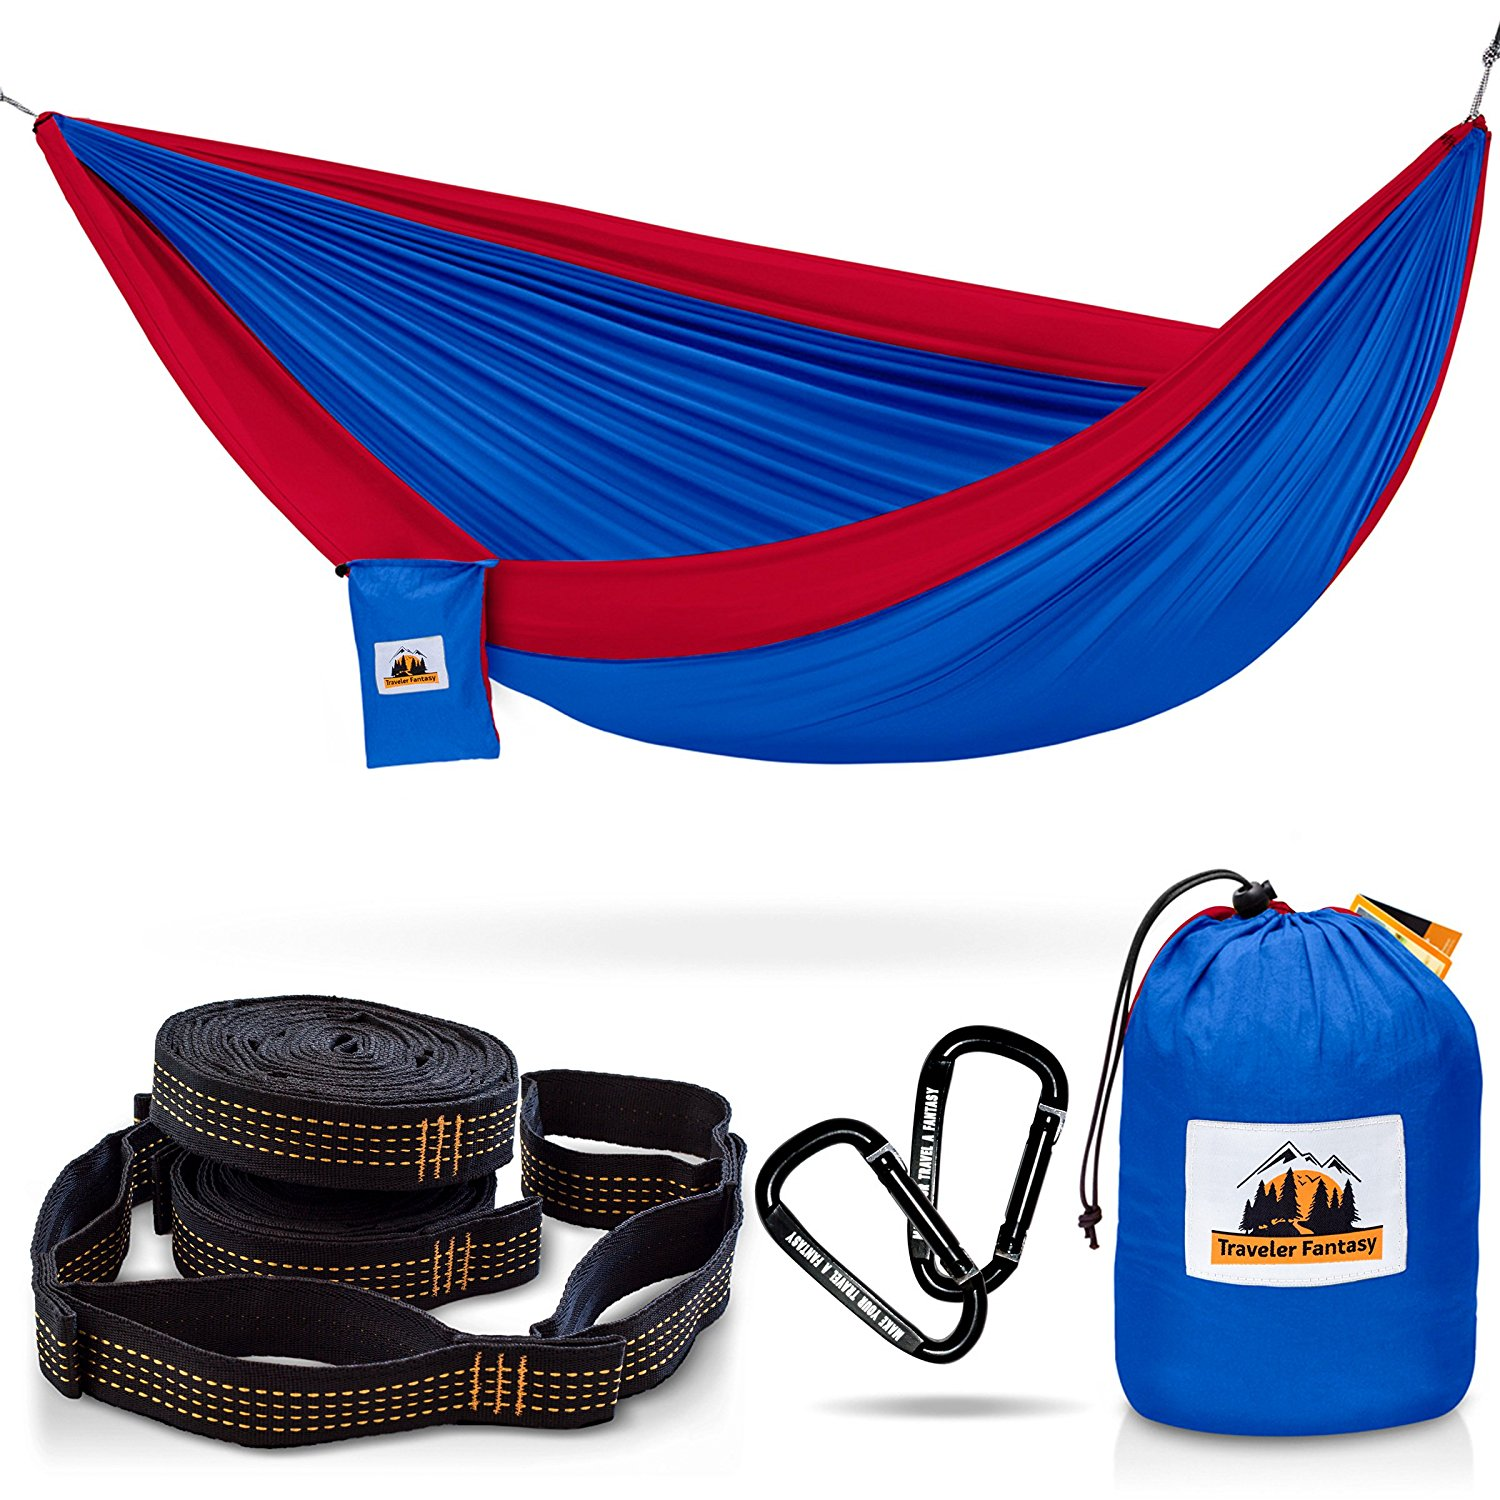 Hammock for Camping Complete Bundle, CHRISTMAS GIFTS 60% SALE - Top Rated, Portable – Includes: Double Parachute Hammock, 2 Heavy Duty 10' Tree Straps, Carabiners, Gift - by Traveler Fantasy